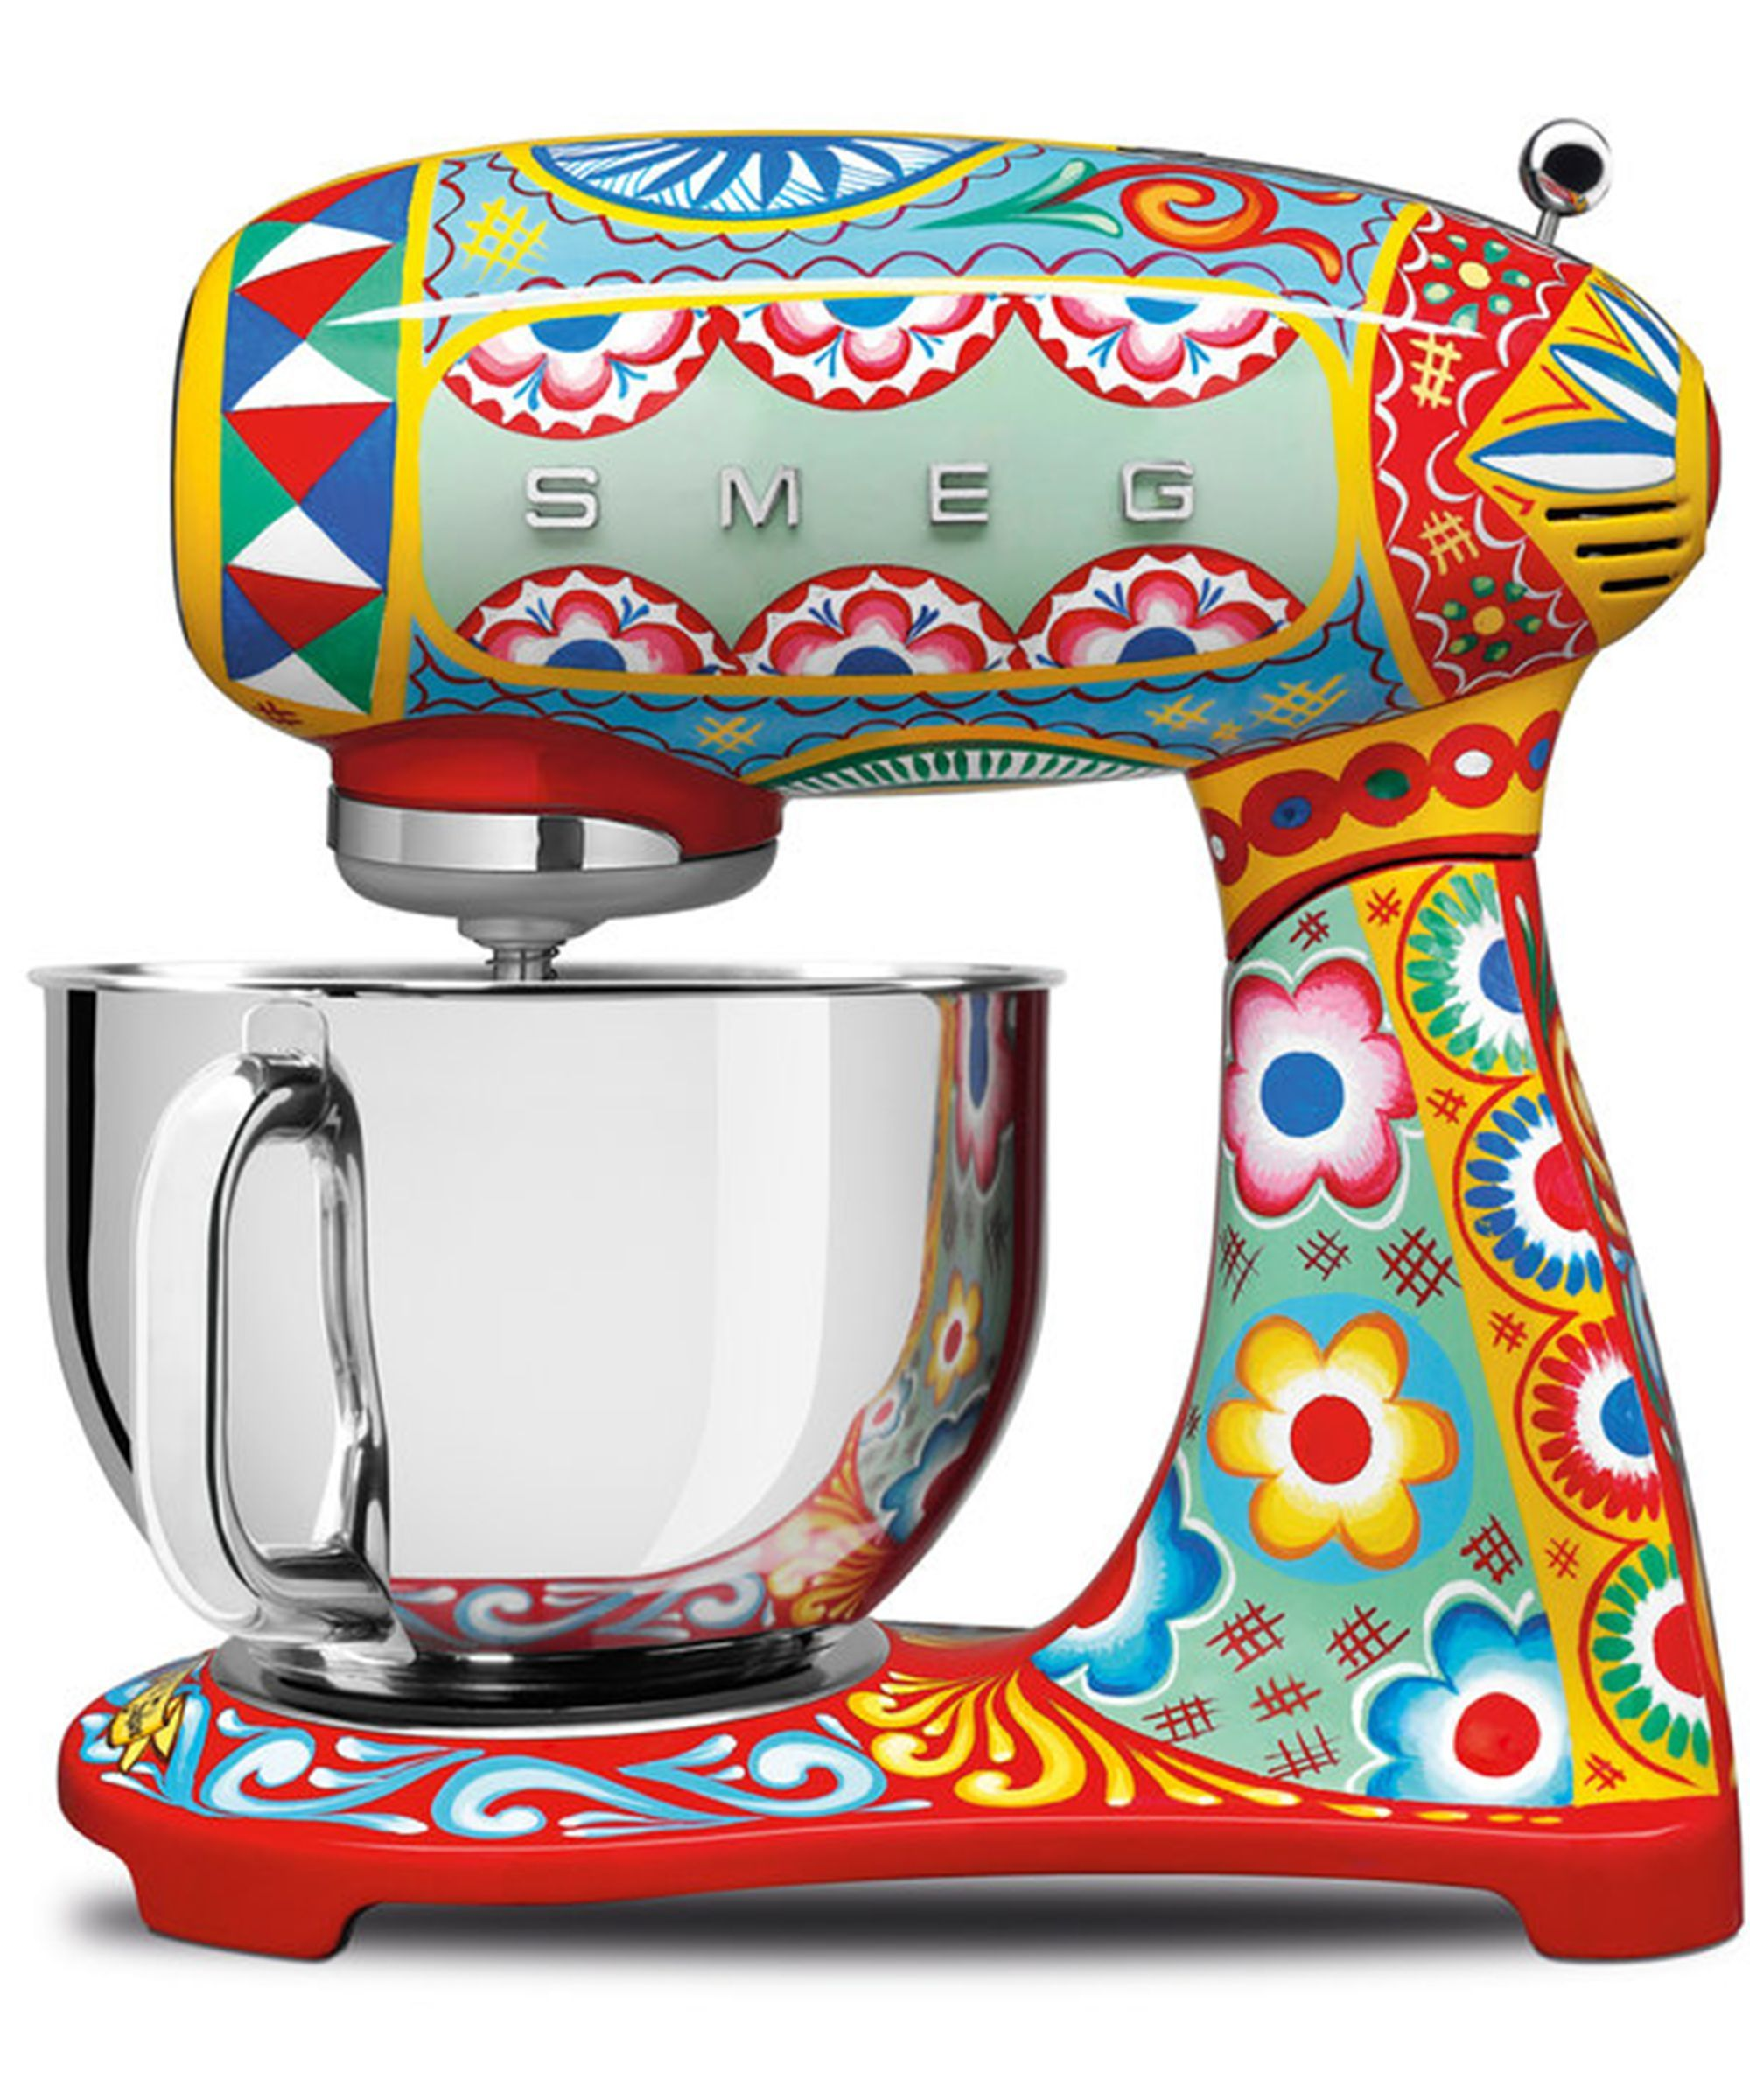 dolce gabbana is releasing a line of kitchen appliances we